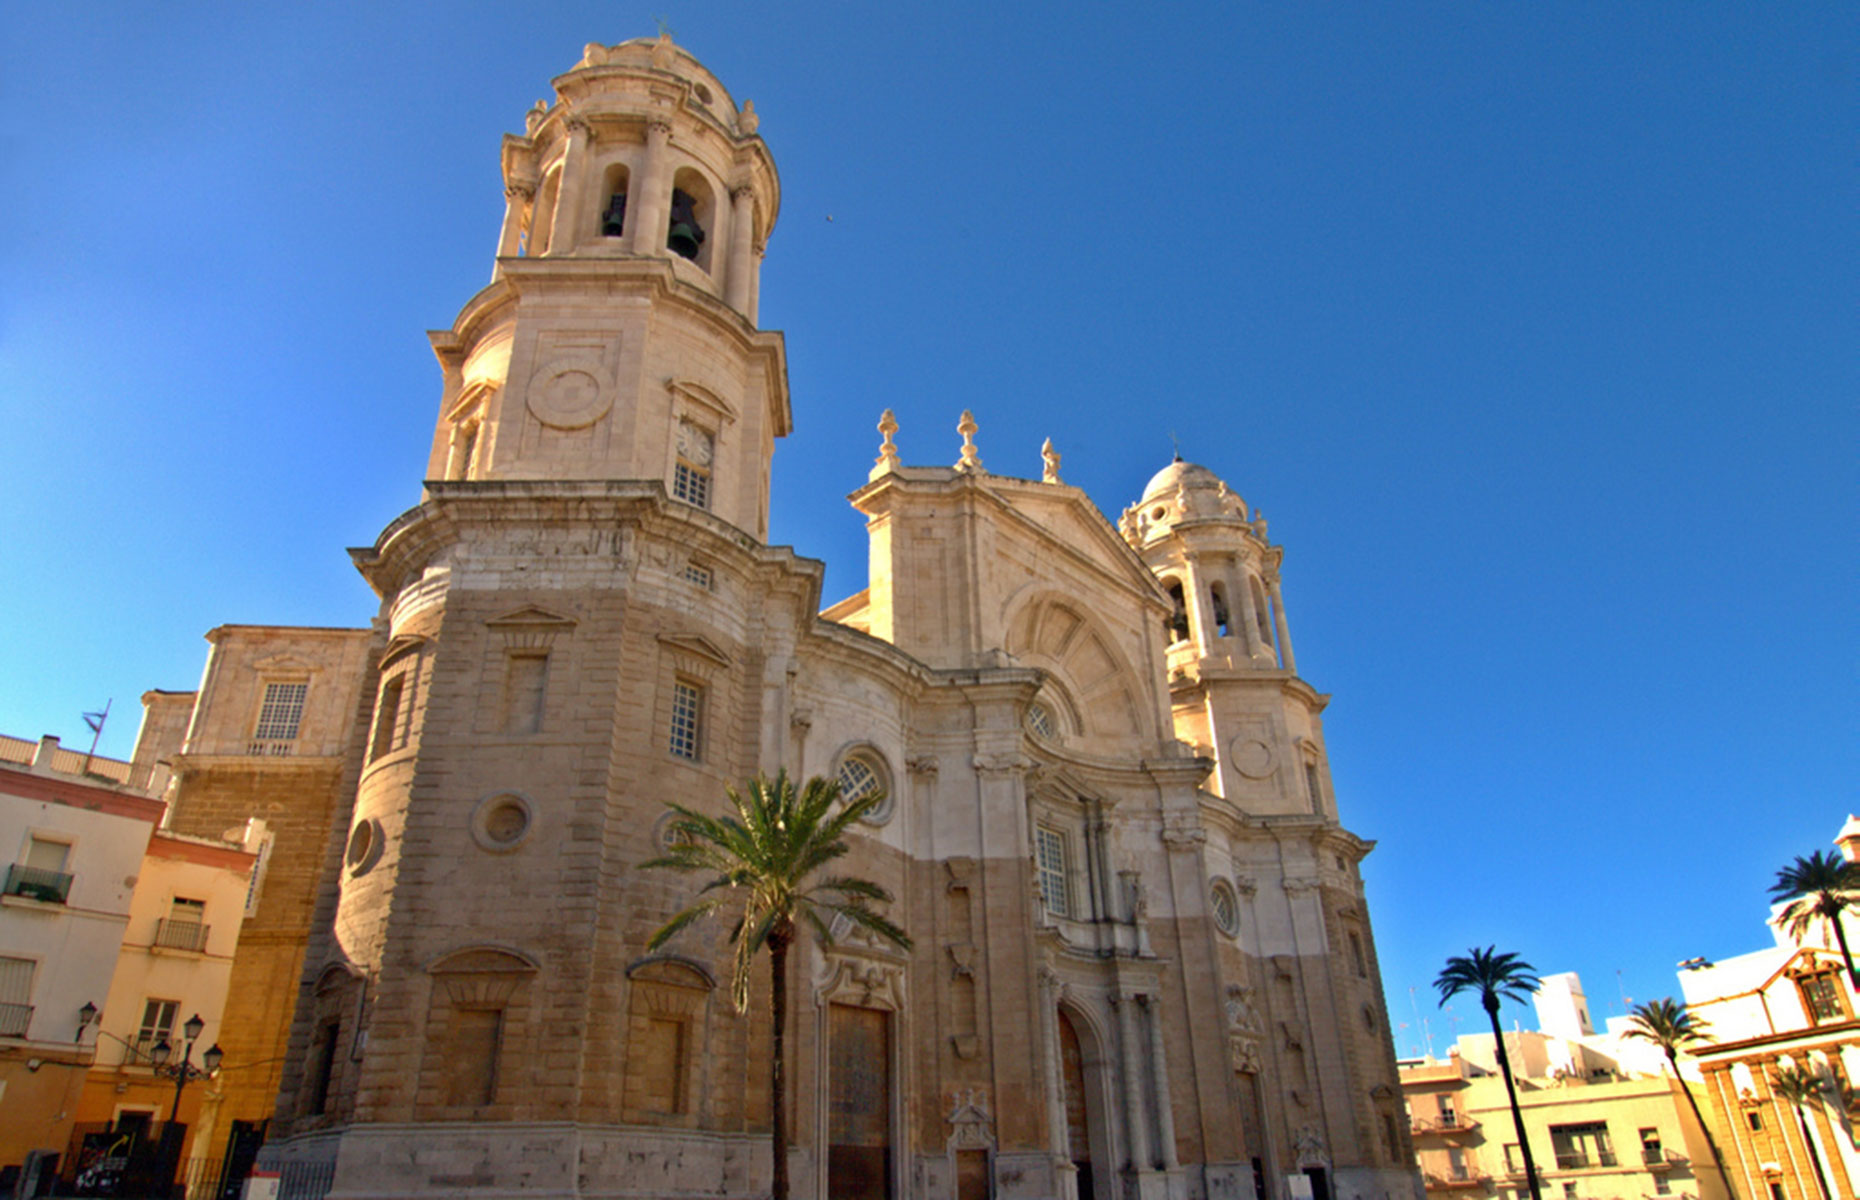 Santa Cruz Christian church cathedral in Cadiz Spain